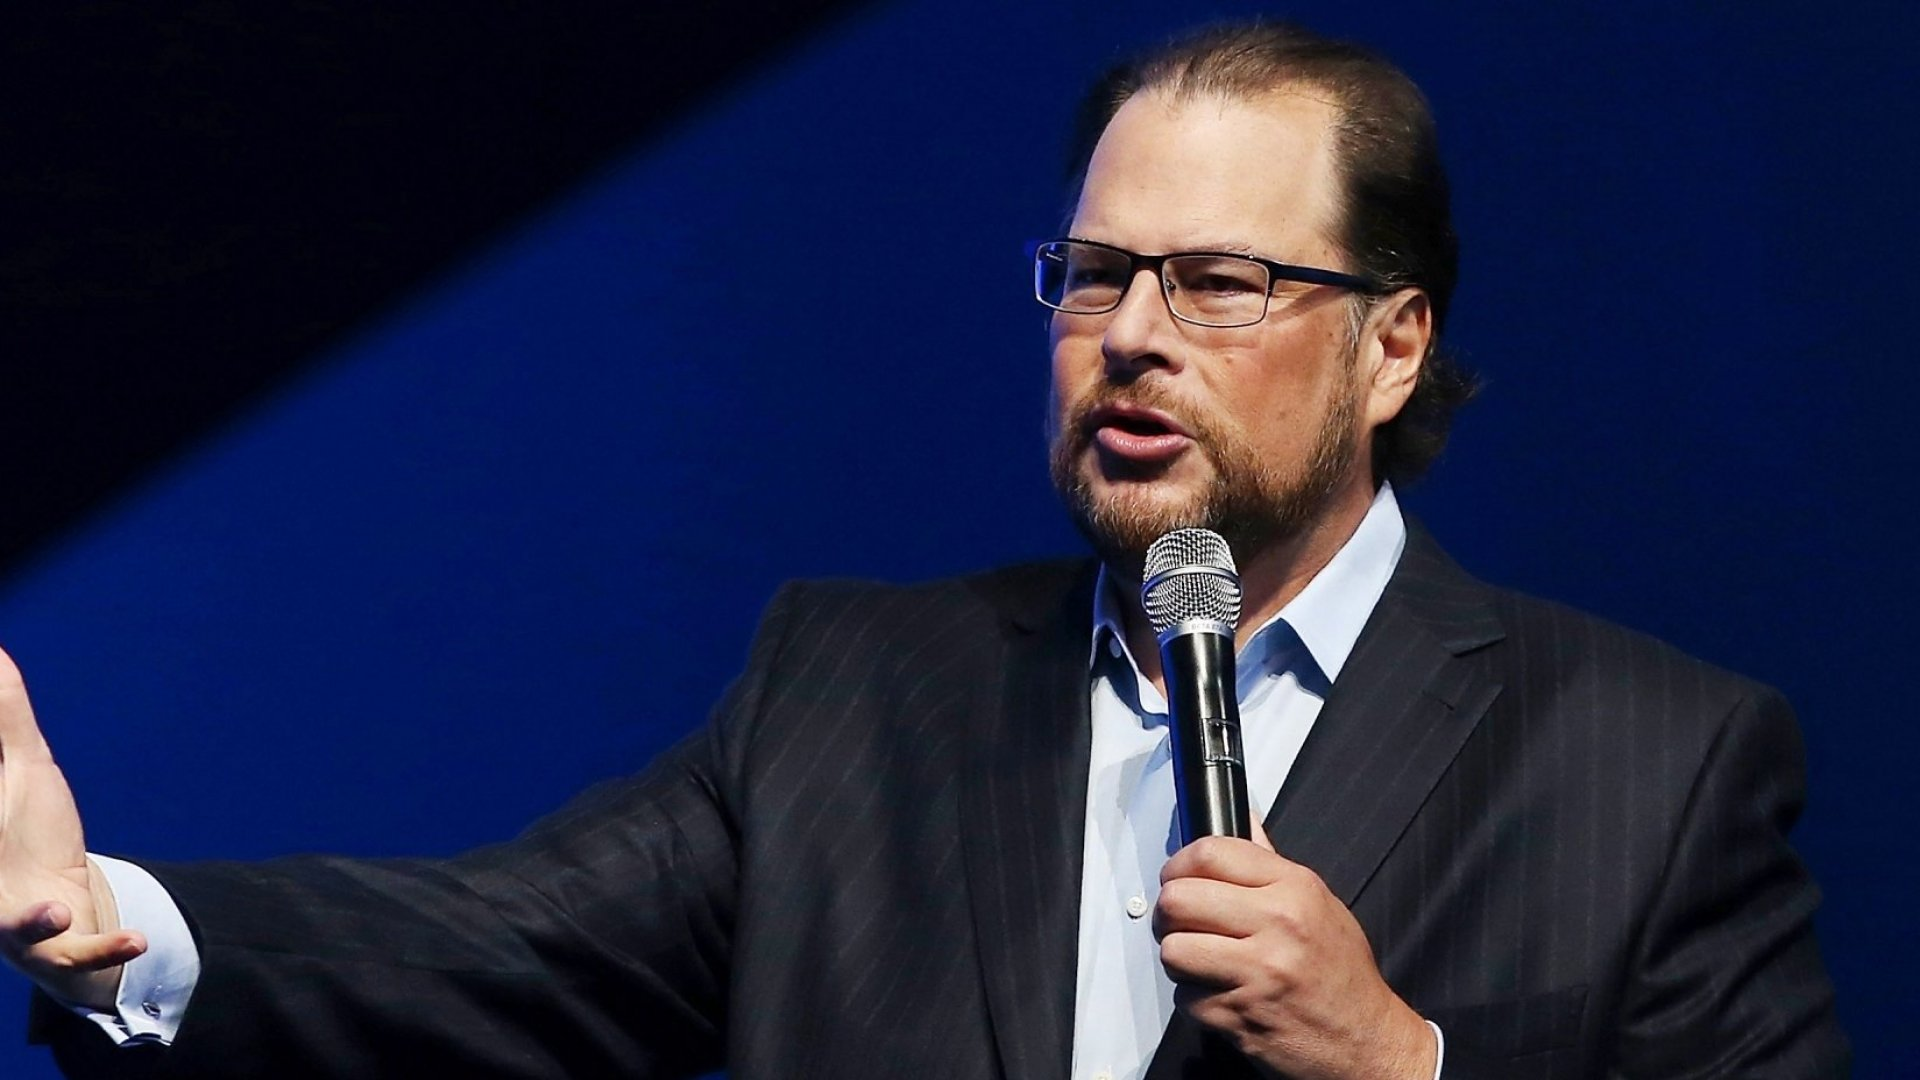 Salesforce CEO Marc Benioff Urges Businesses to Lead on Social Issues